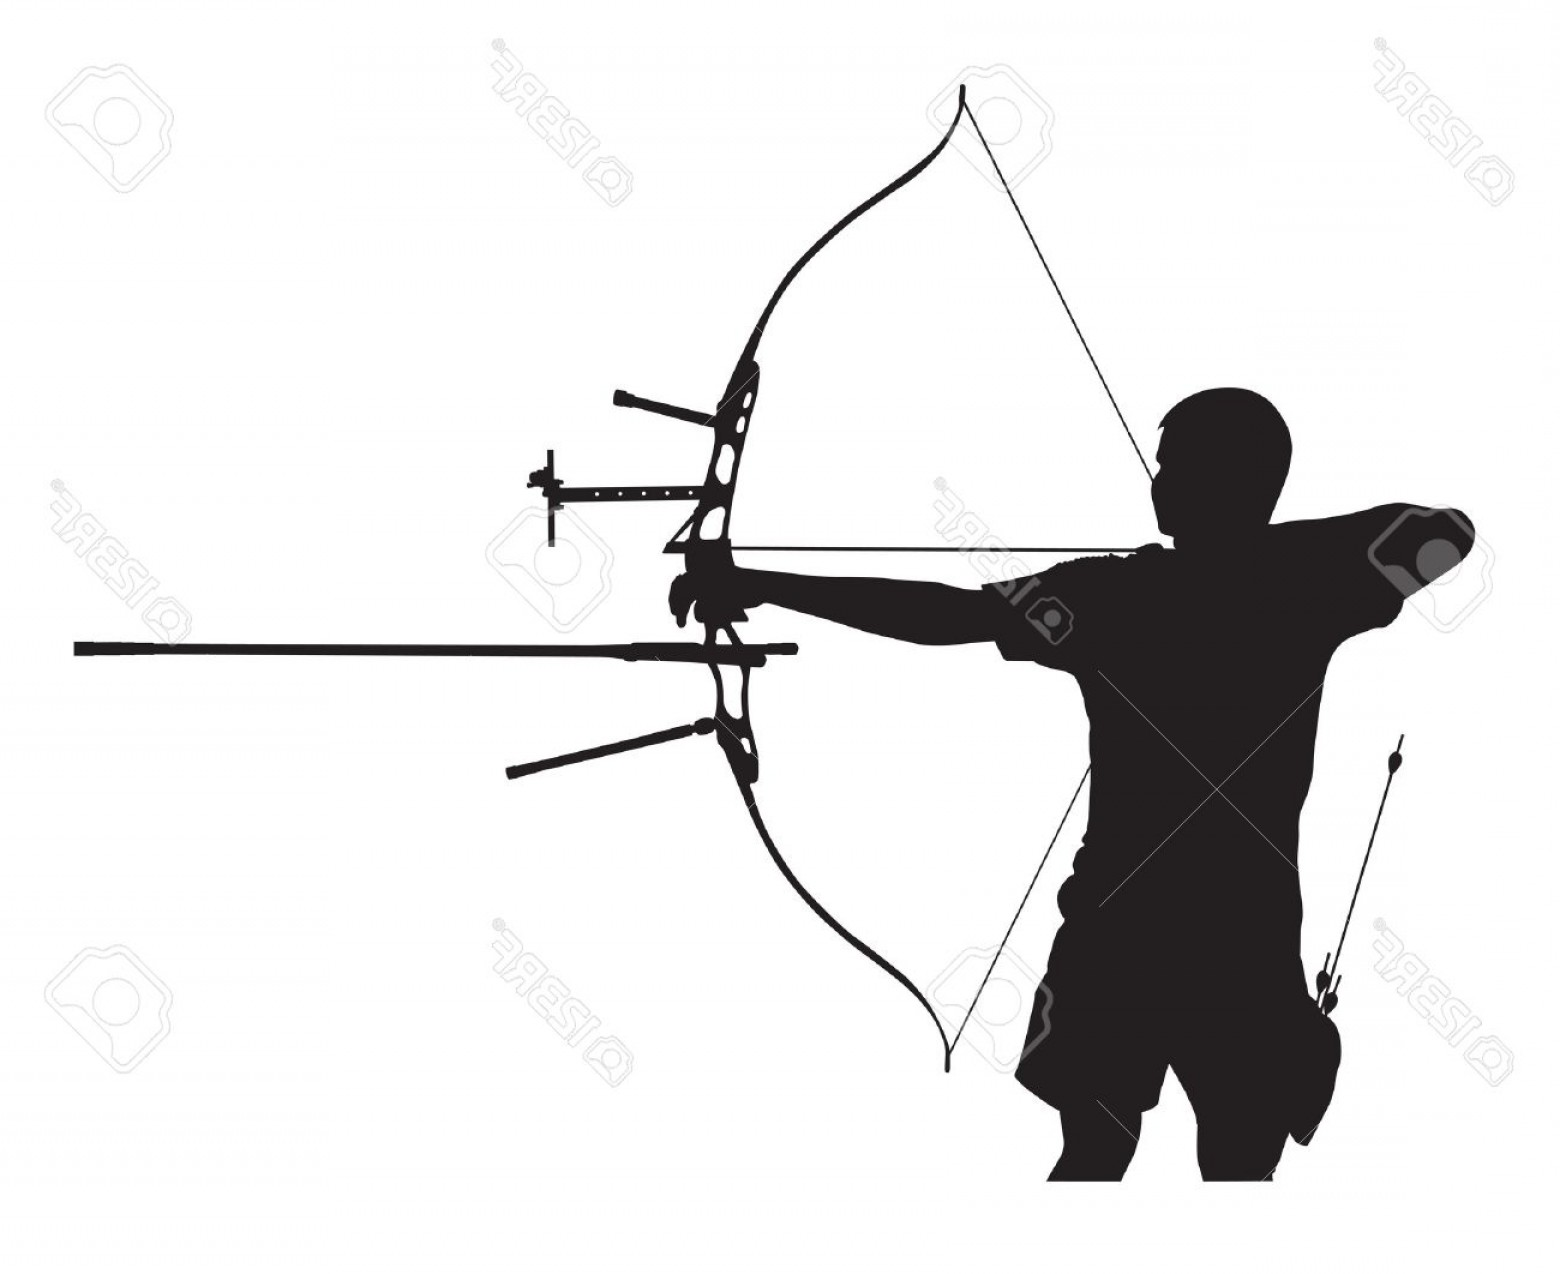 Vector Archery Silhouette: Photosilhouette Of Archer Stretching The Bow And Aiming